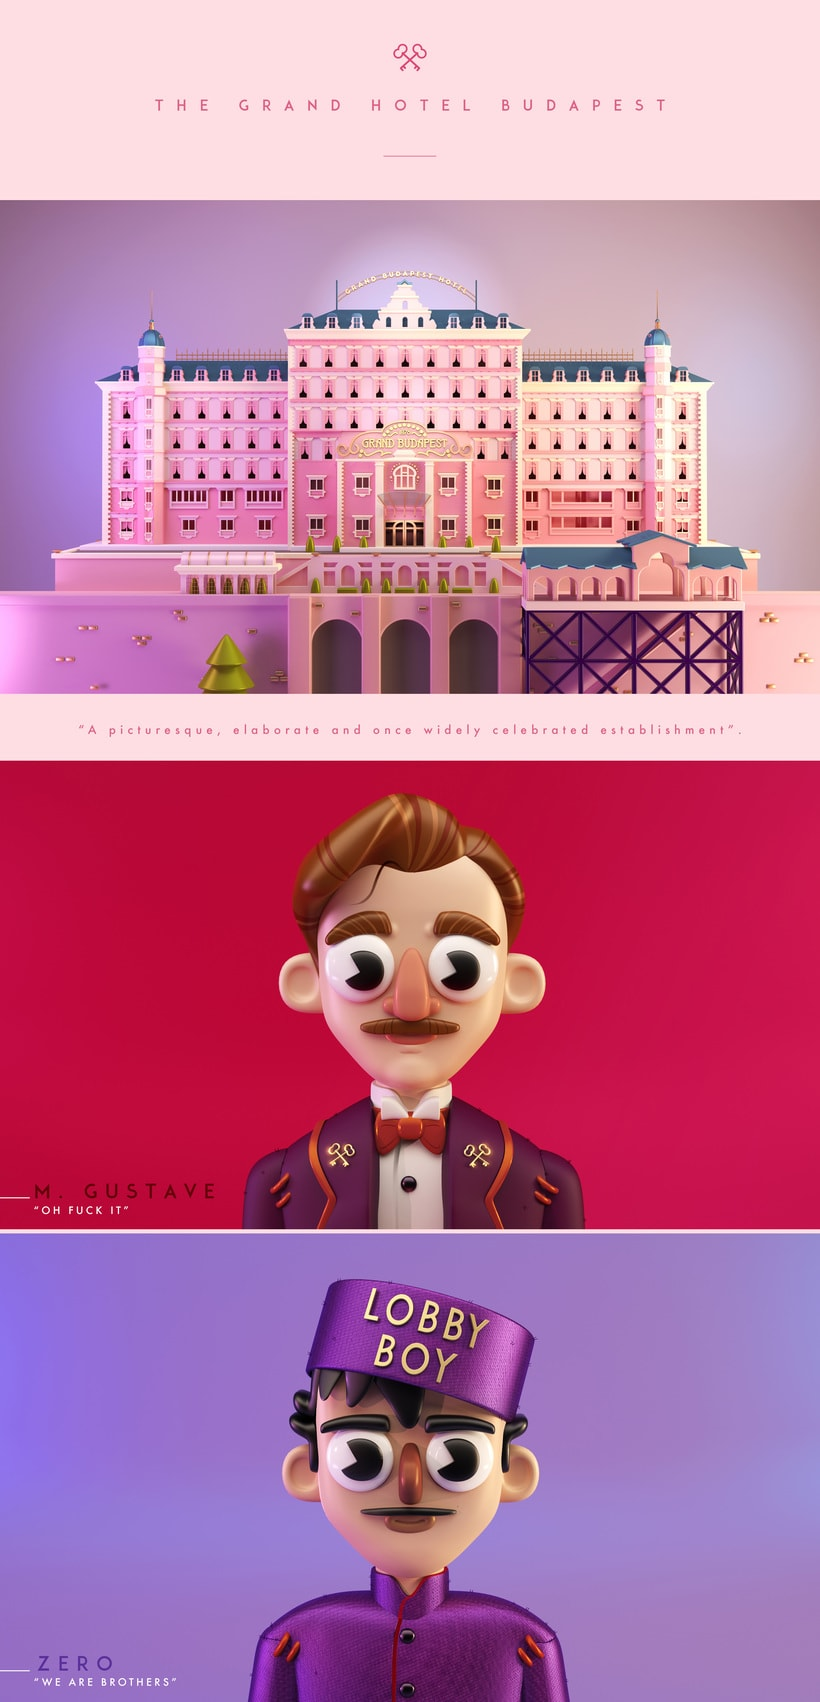 The Grand Hotel Budapest, tribute to W.A. -1